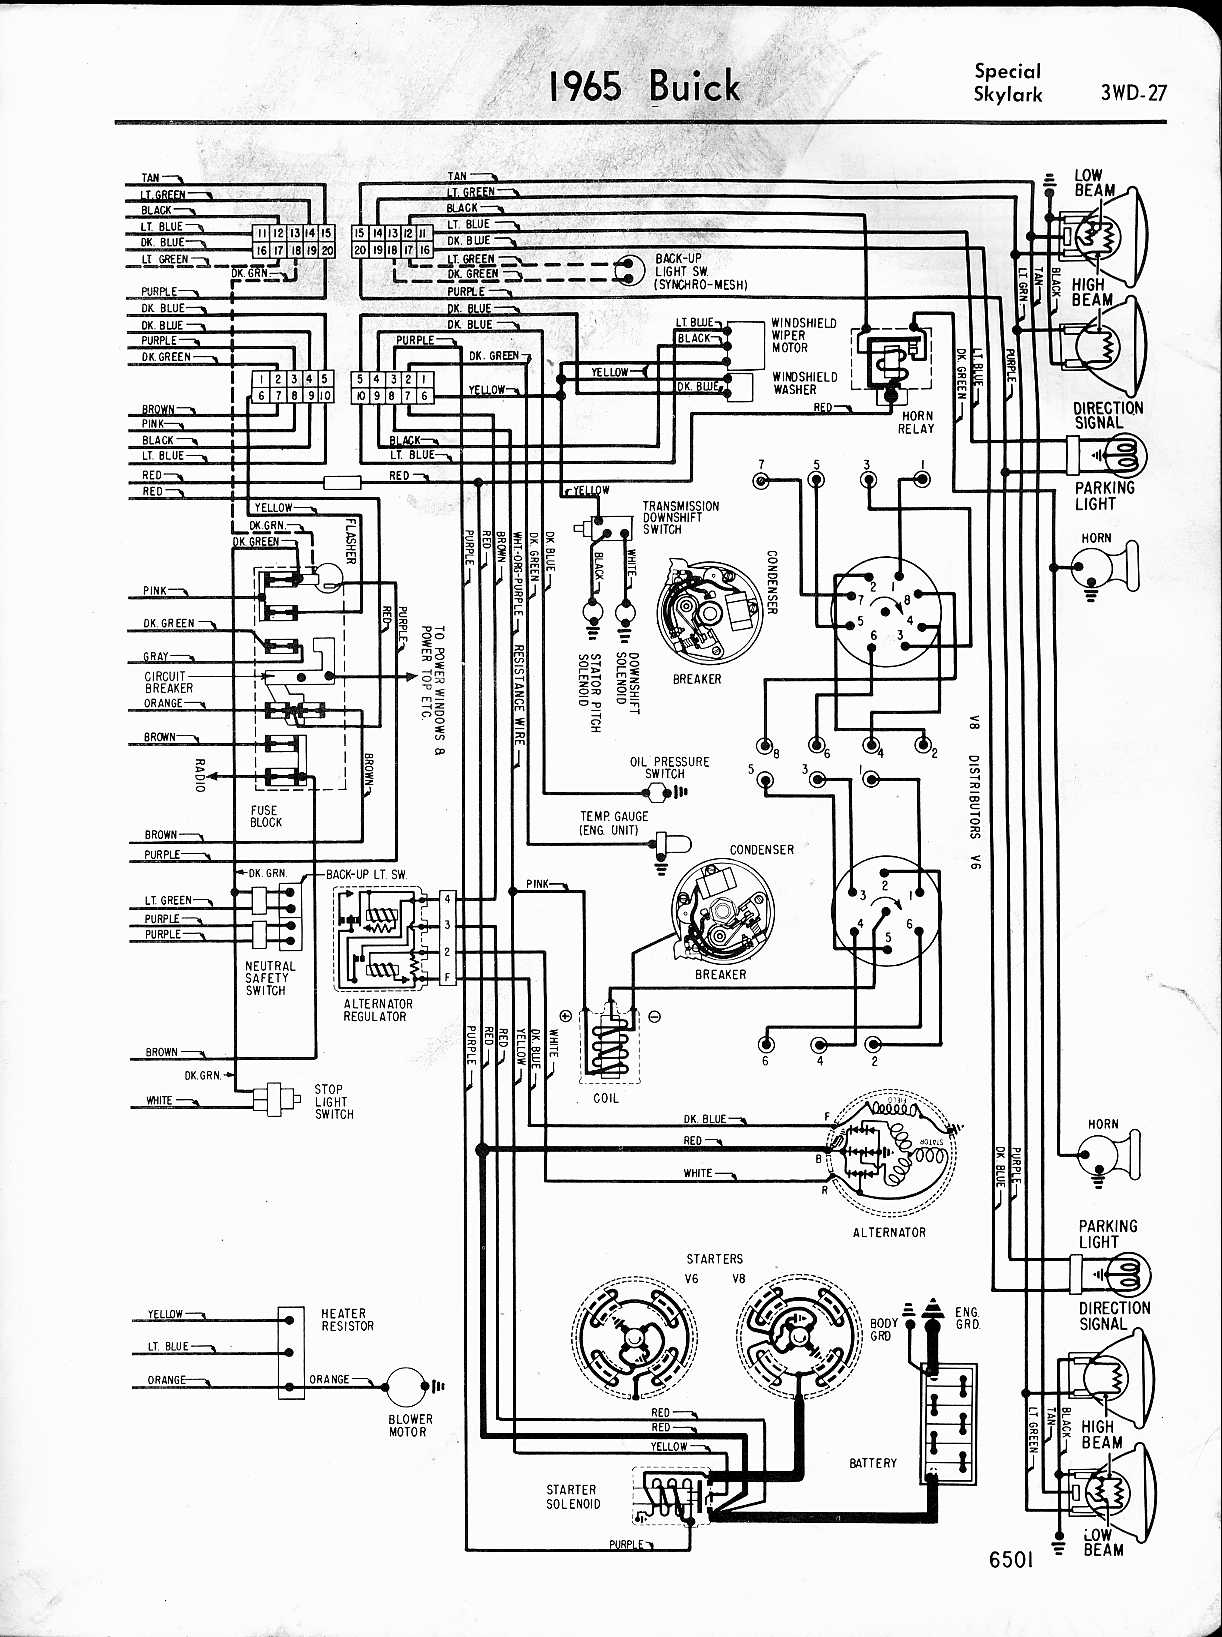 Buick Wiring Diagrams 1957 1965 1964 Vw Alternator Special Skylark Right Half